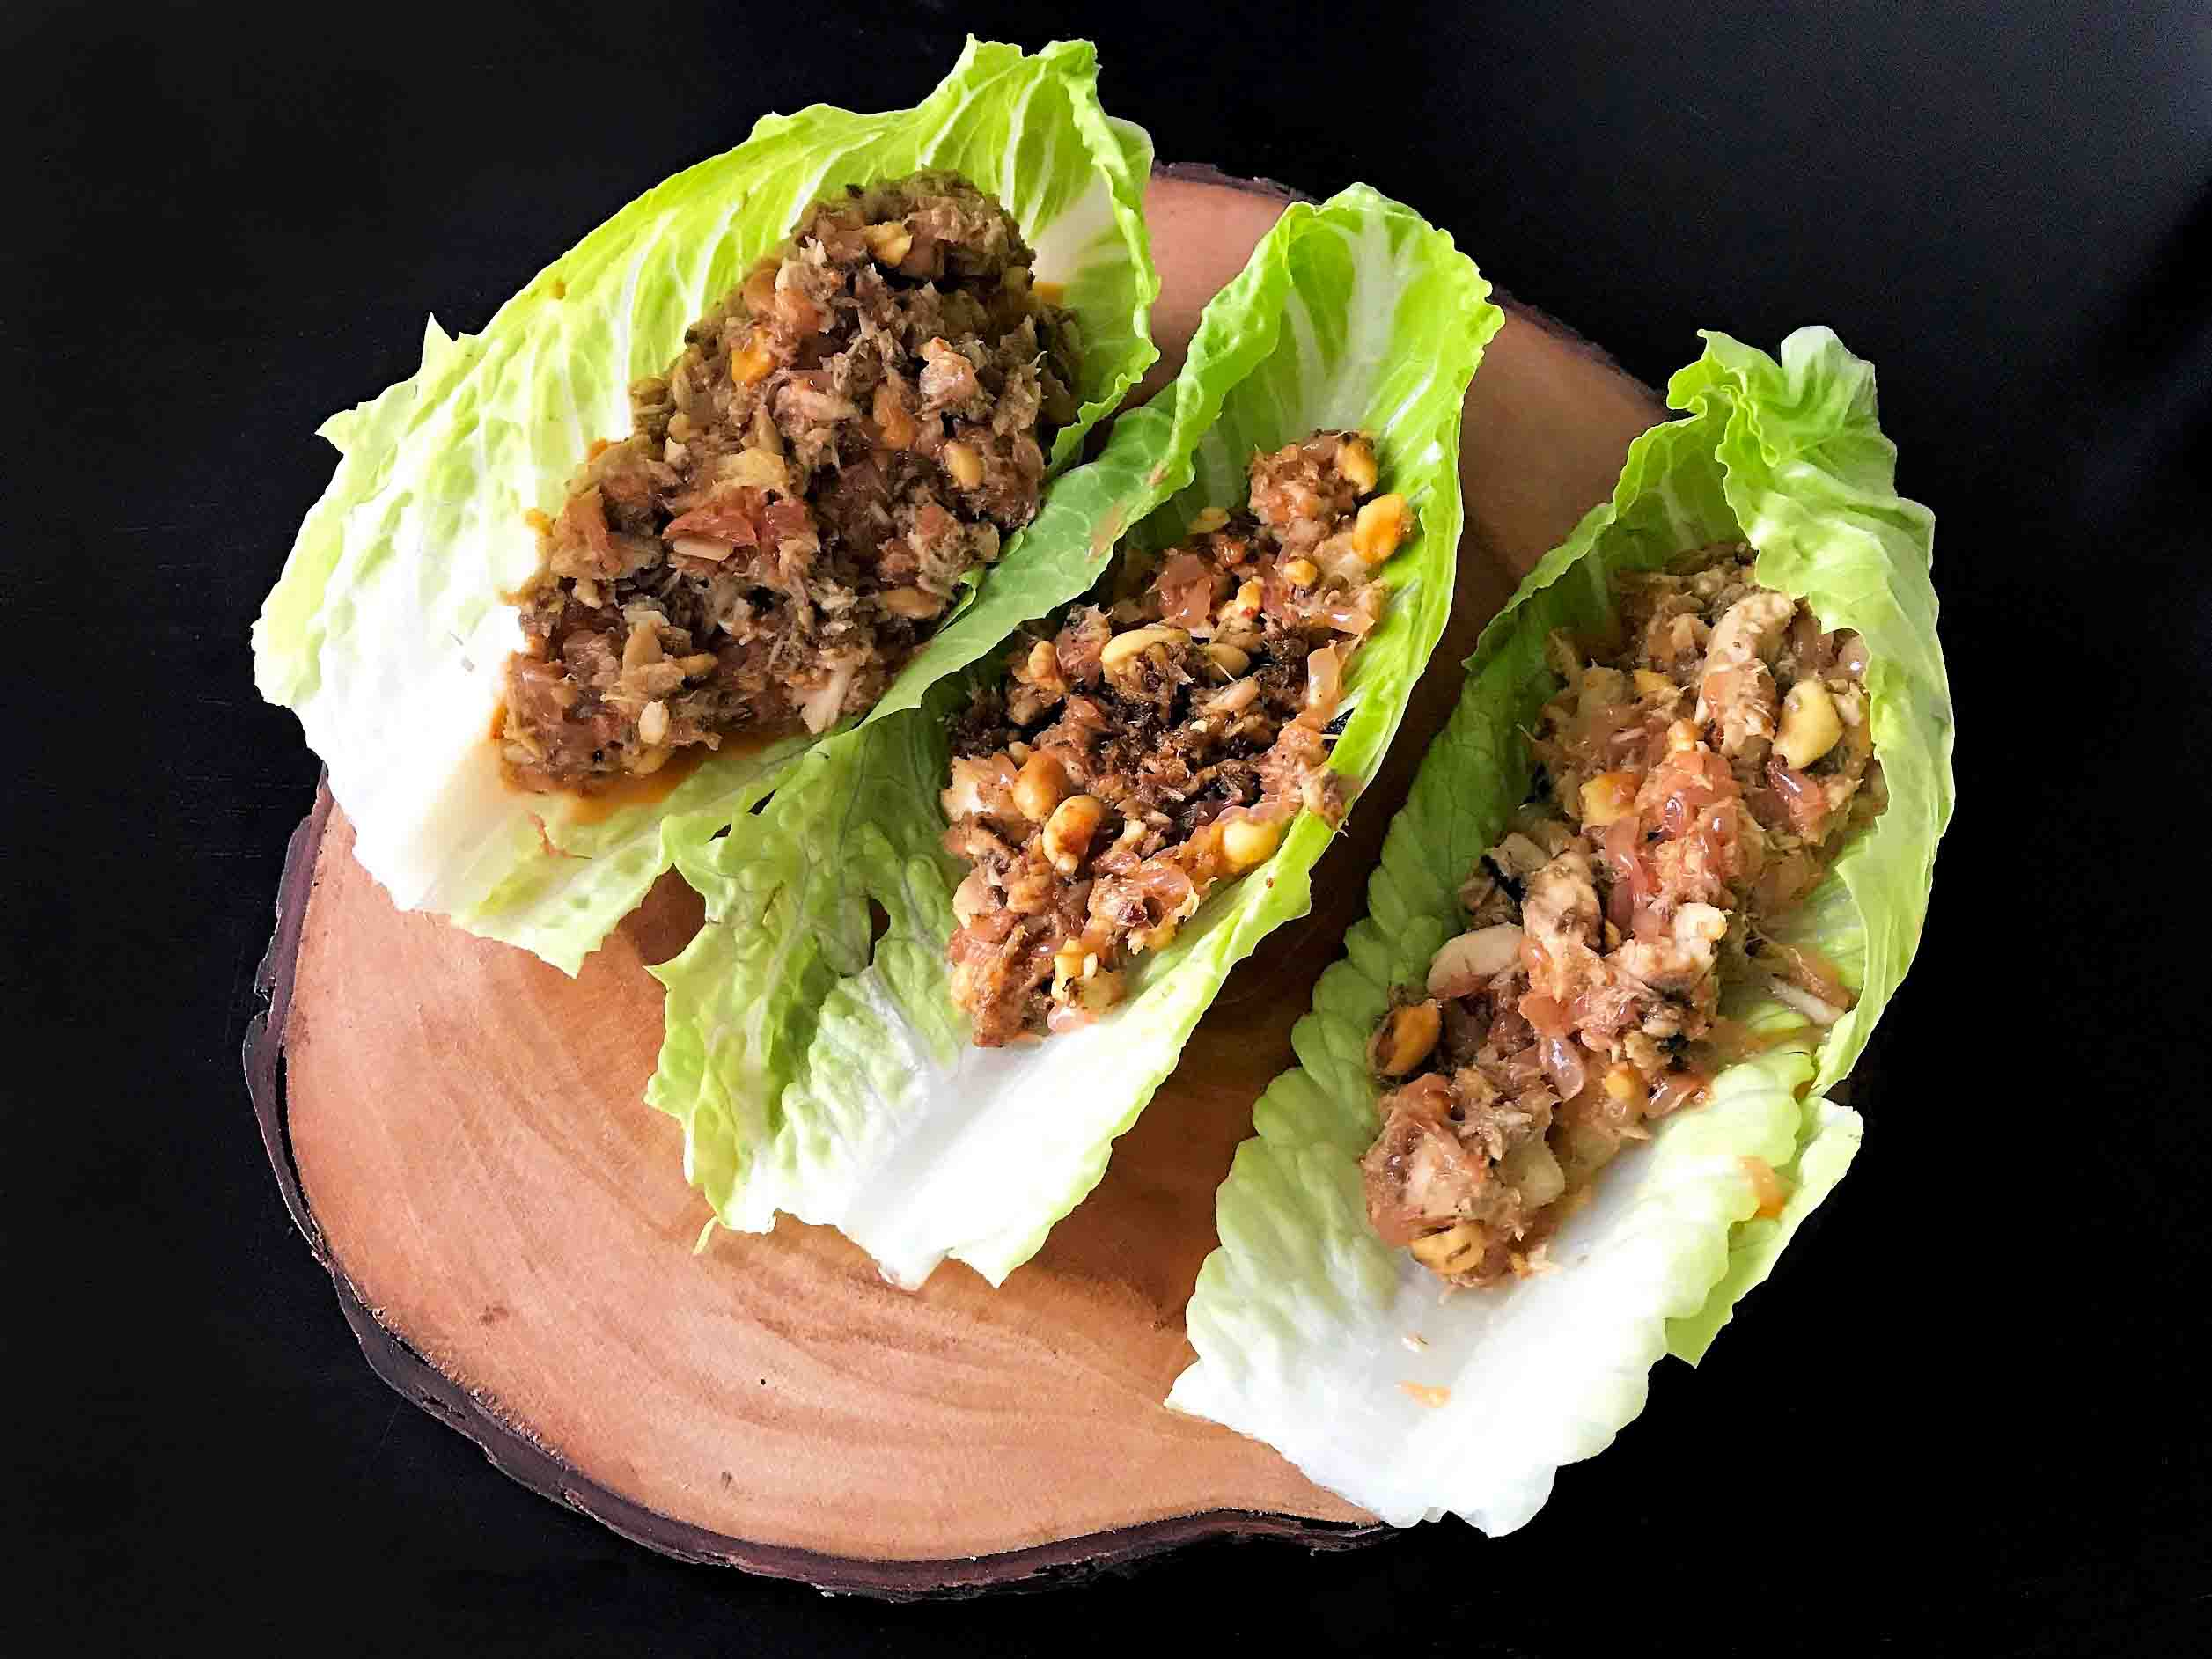 Grapefruit and Pomelo Peanut Lettuce Wraps